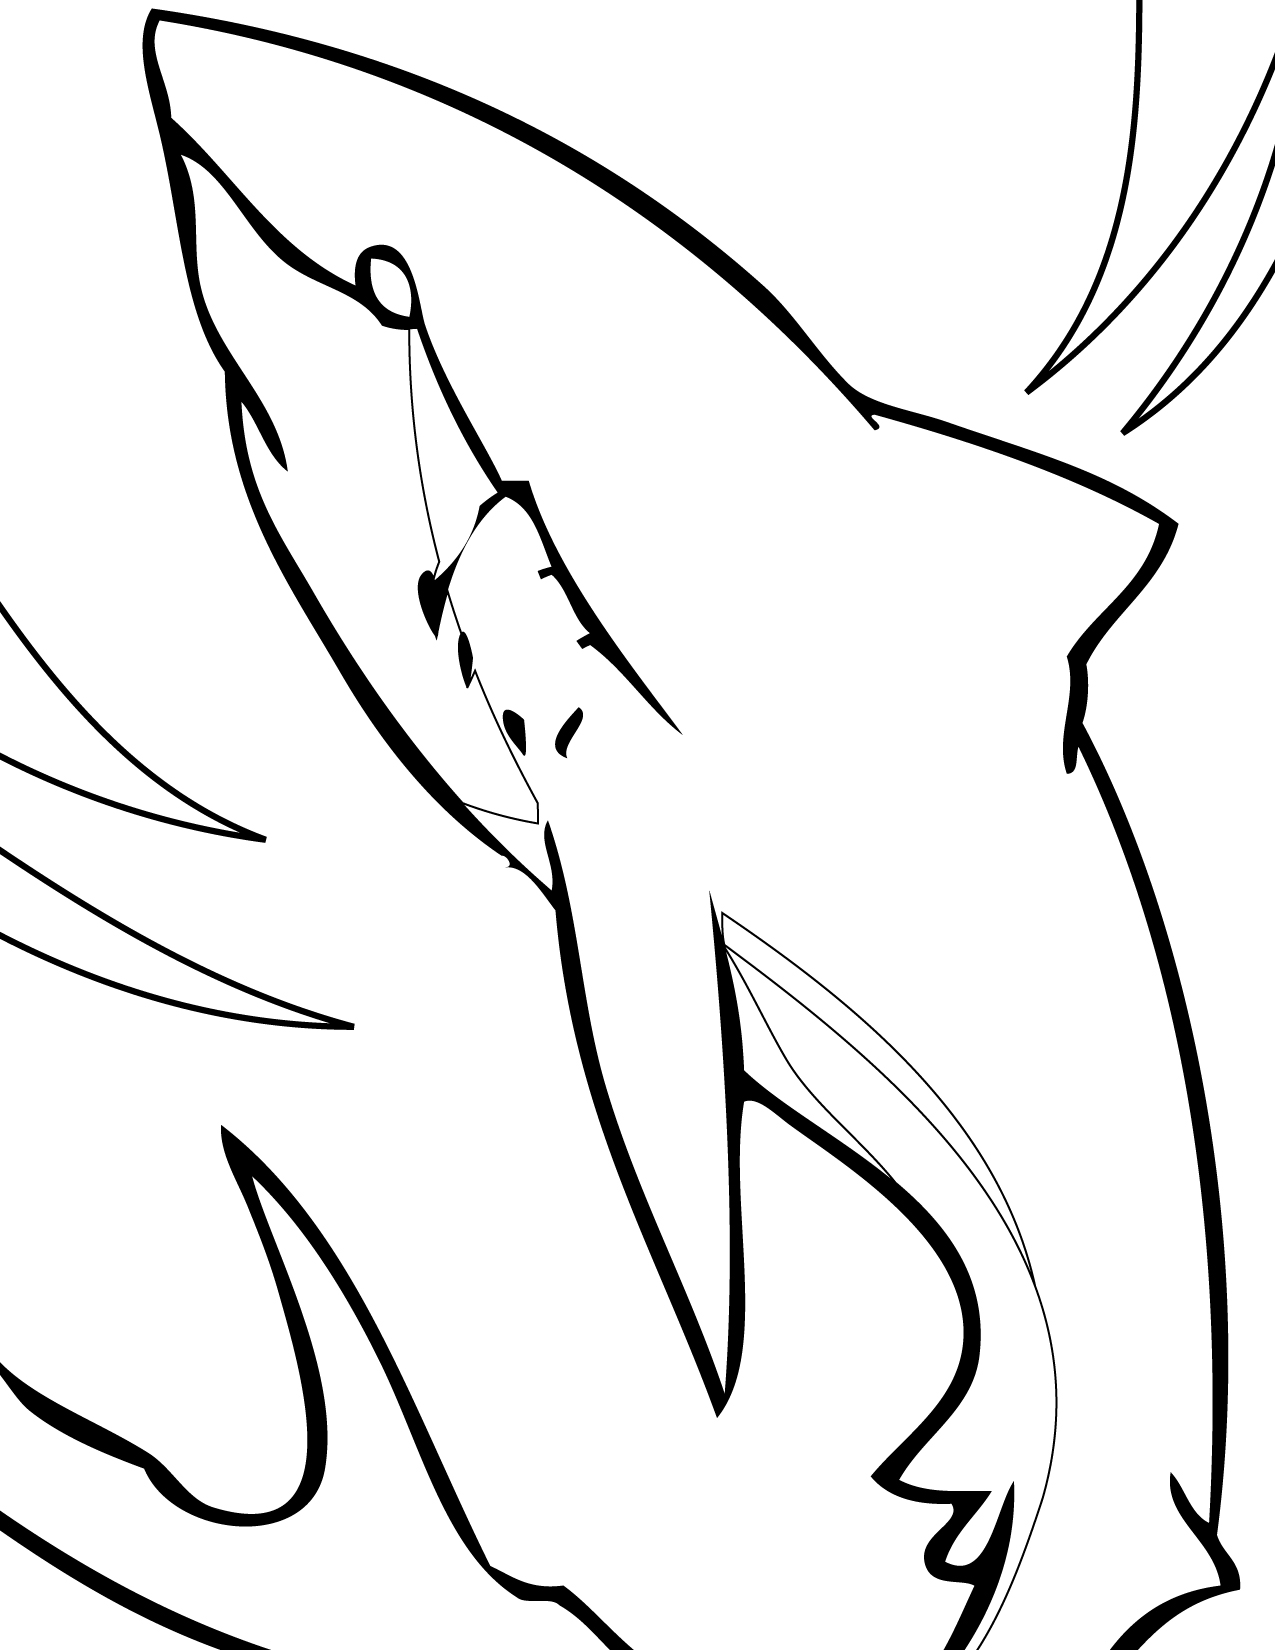 colouring pages of sharks free printable shark coloring pages for kids sharks of colouring pages